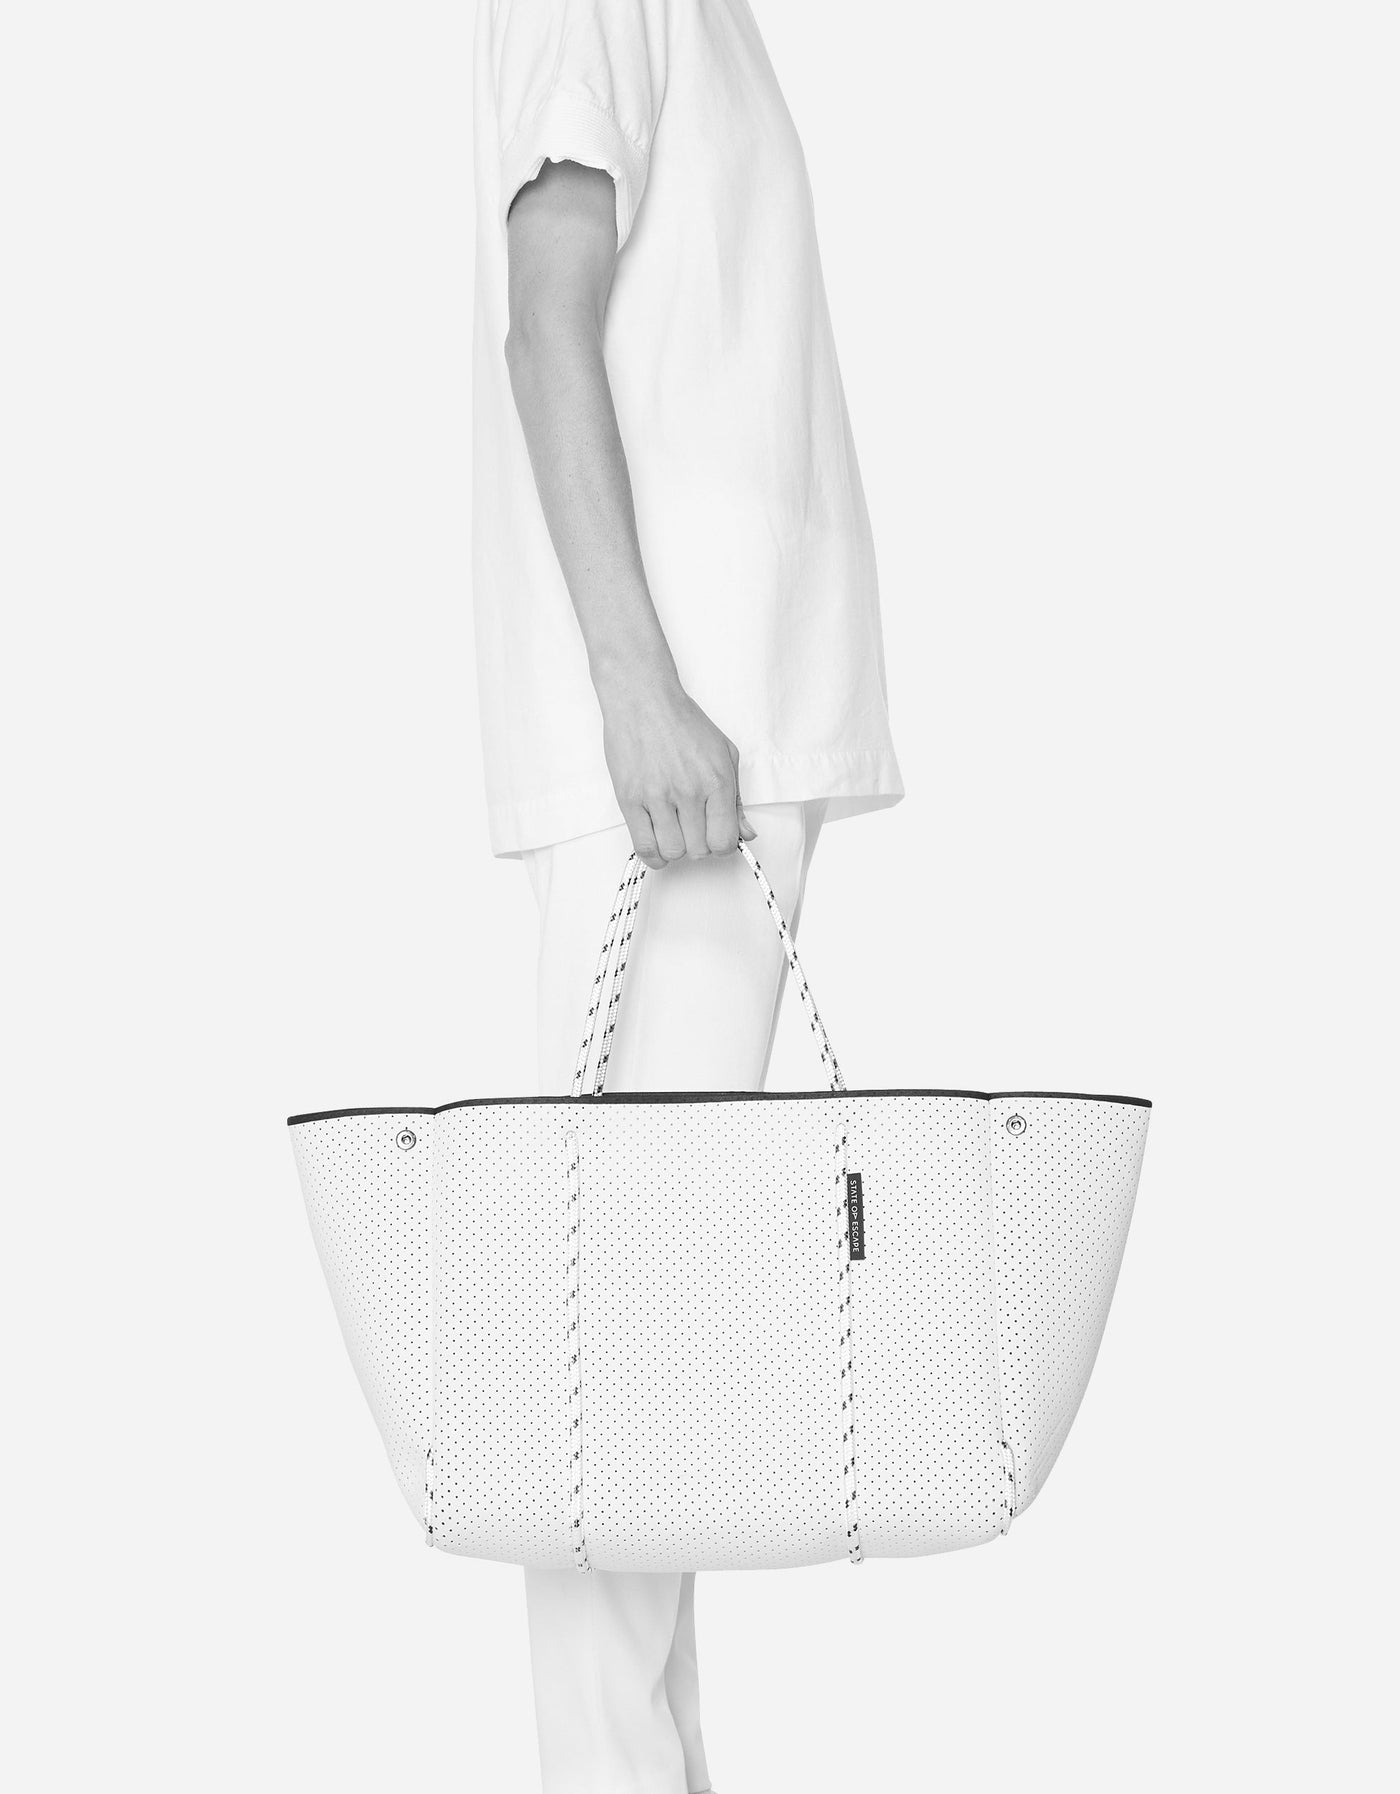 Escape™ tote in mint